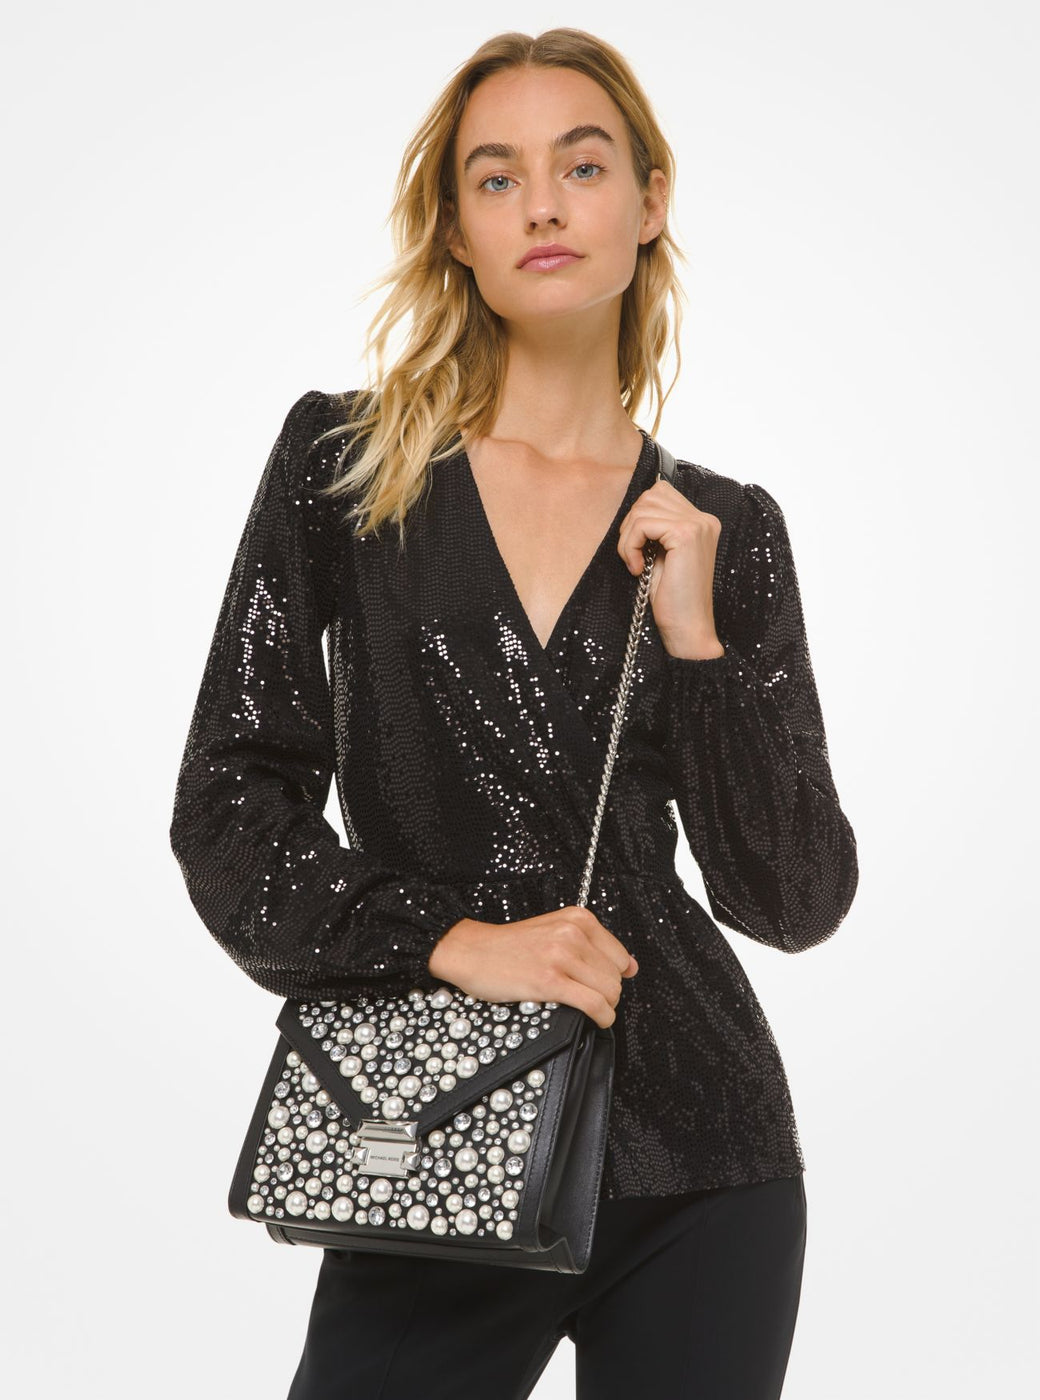 MICHAEL KORS Mirror Jersey Crossover Top